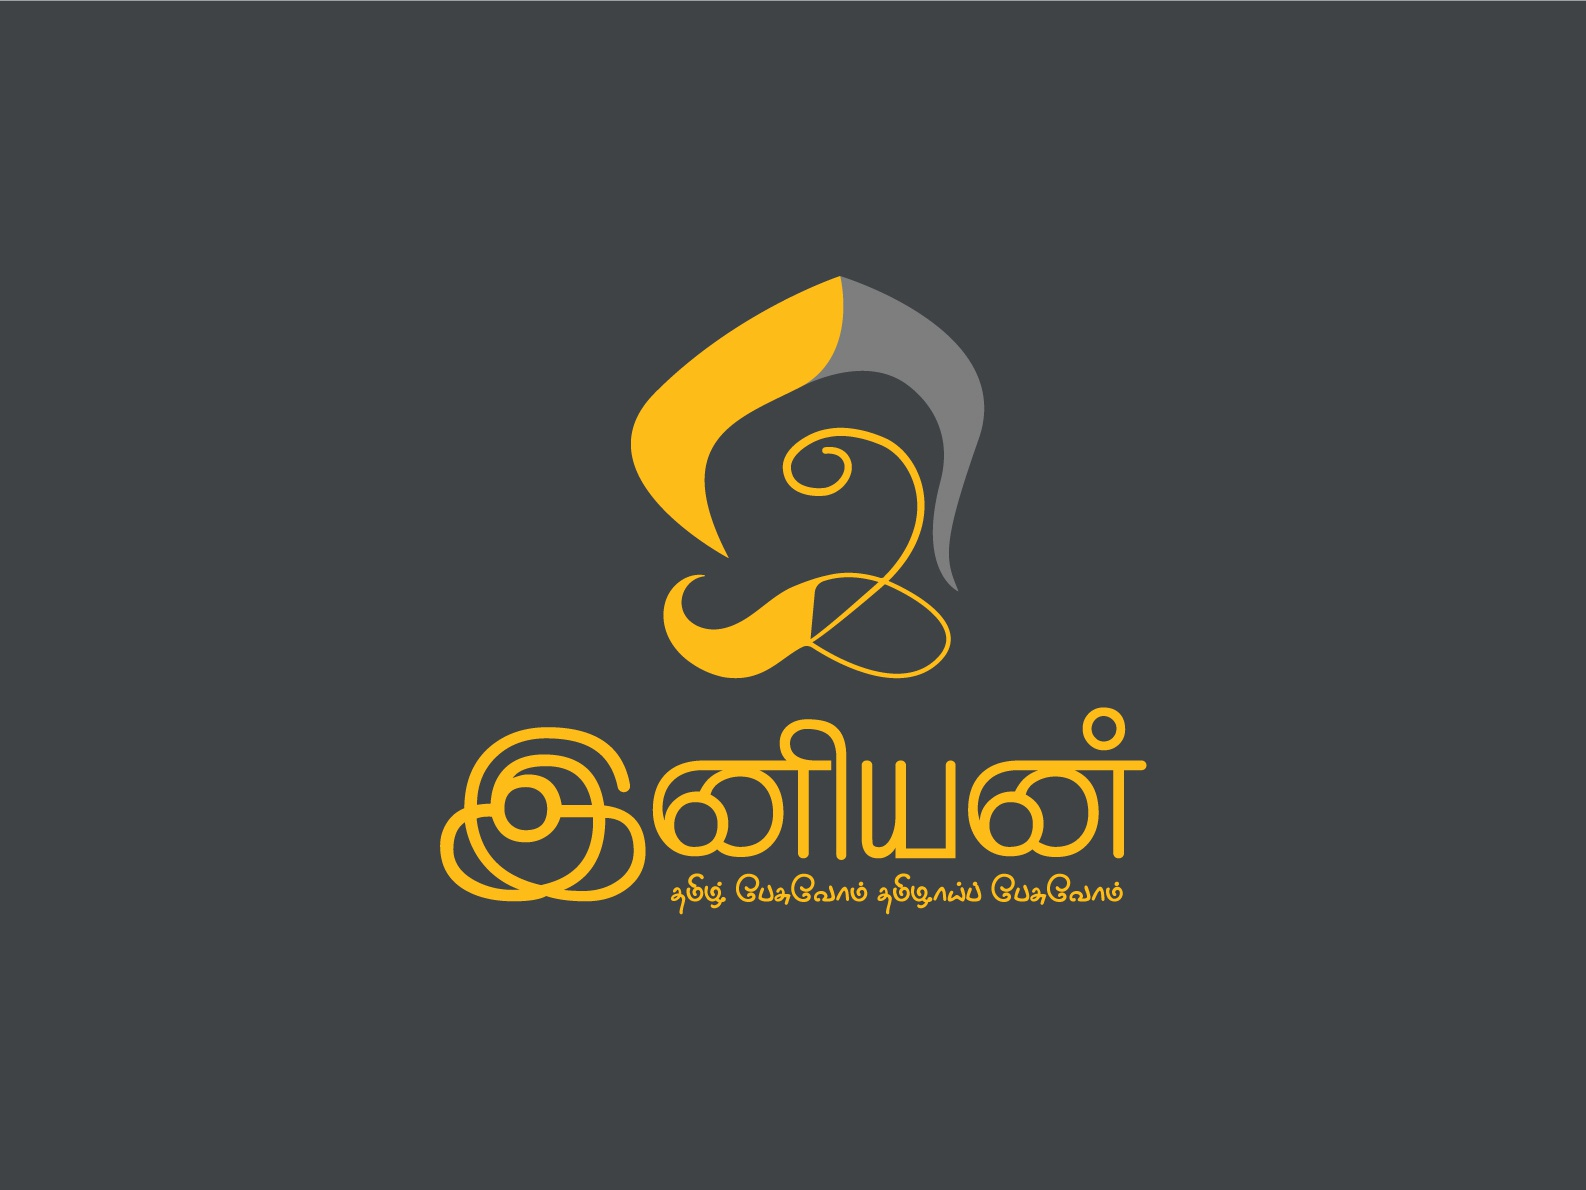 Iniyan Tamil typography logo tamil typography yellow flat typography icon logo branding vector brand illustration design color bharathiyar tamil art type art type